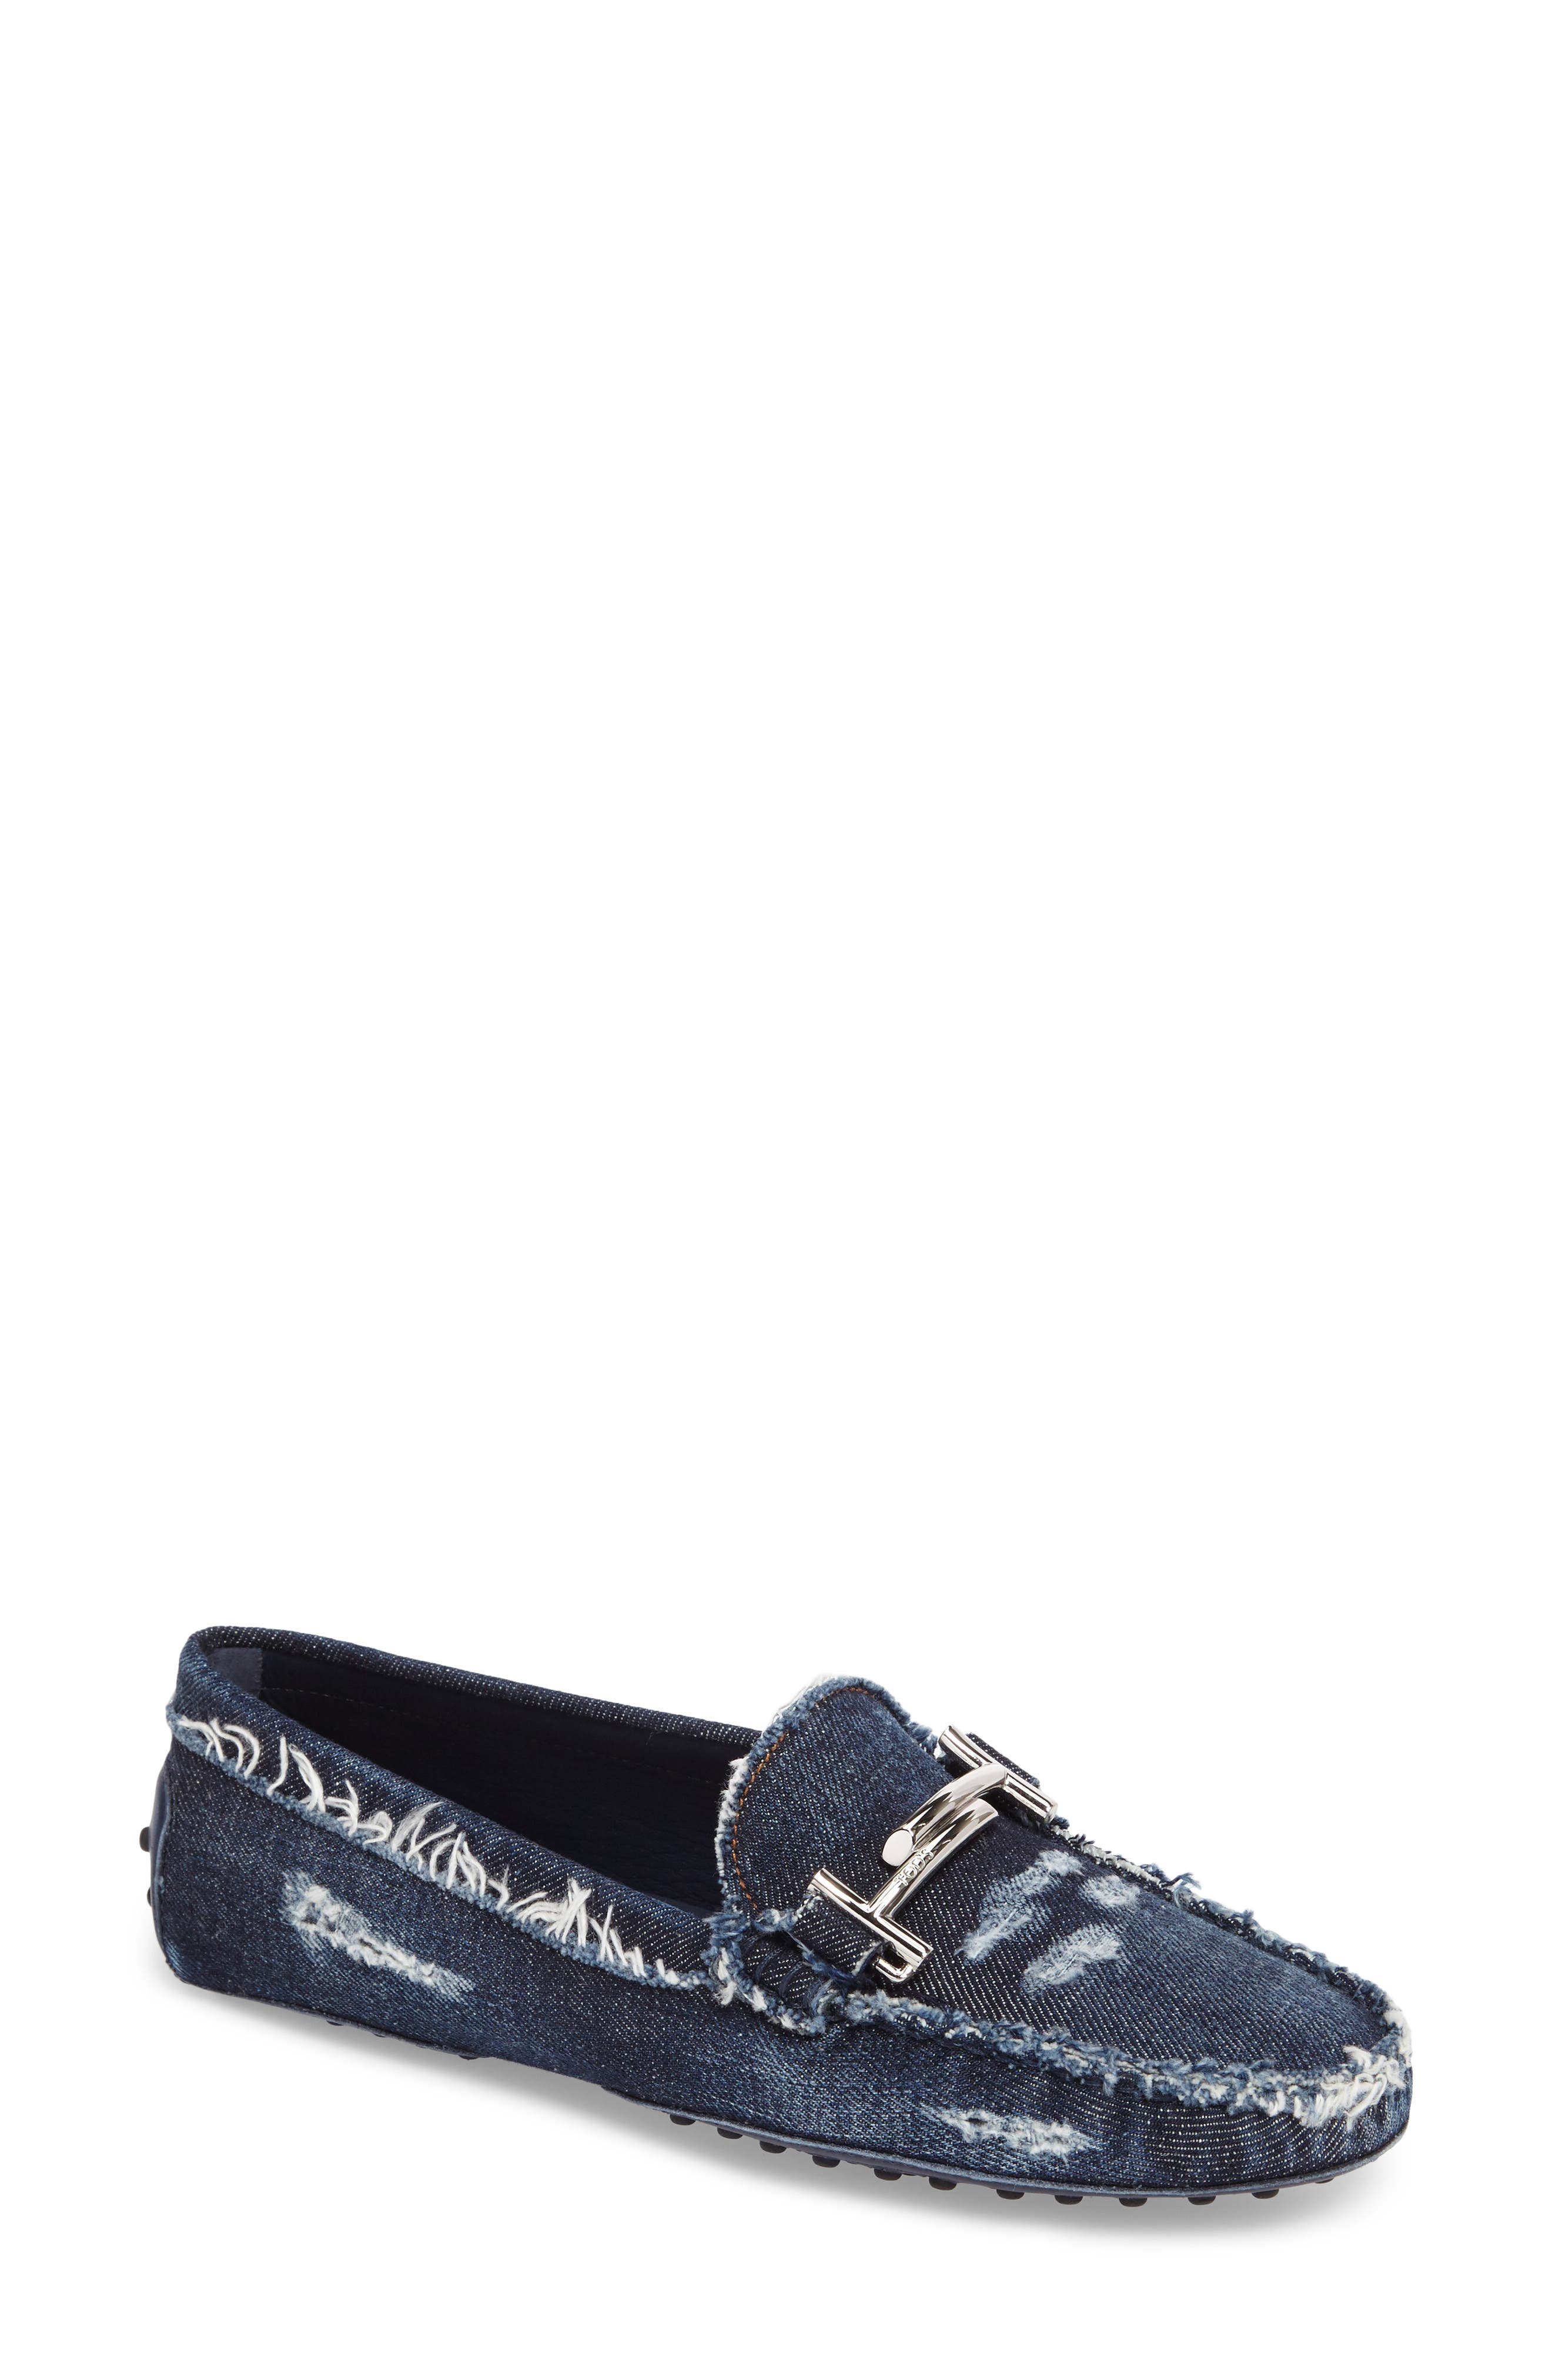 Gommino Double T Loafer,                             Main thumbnail 1, color,